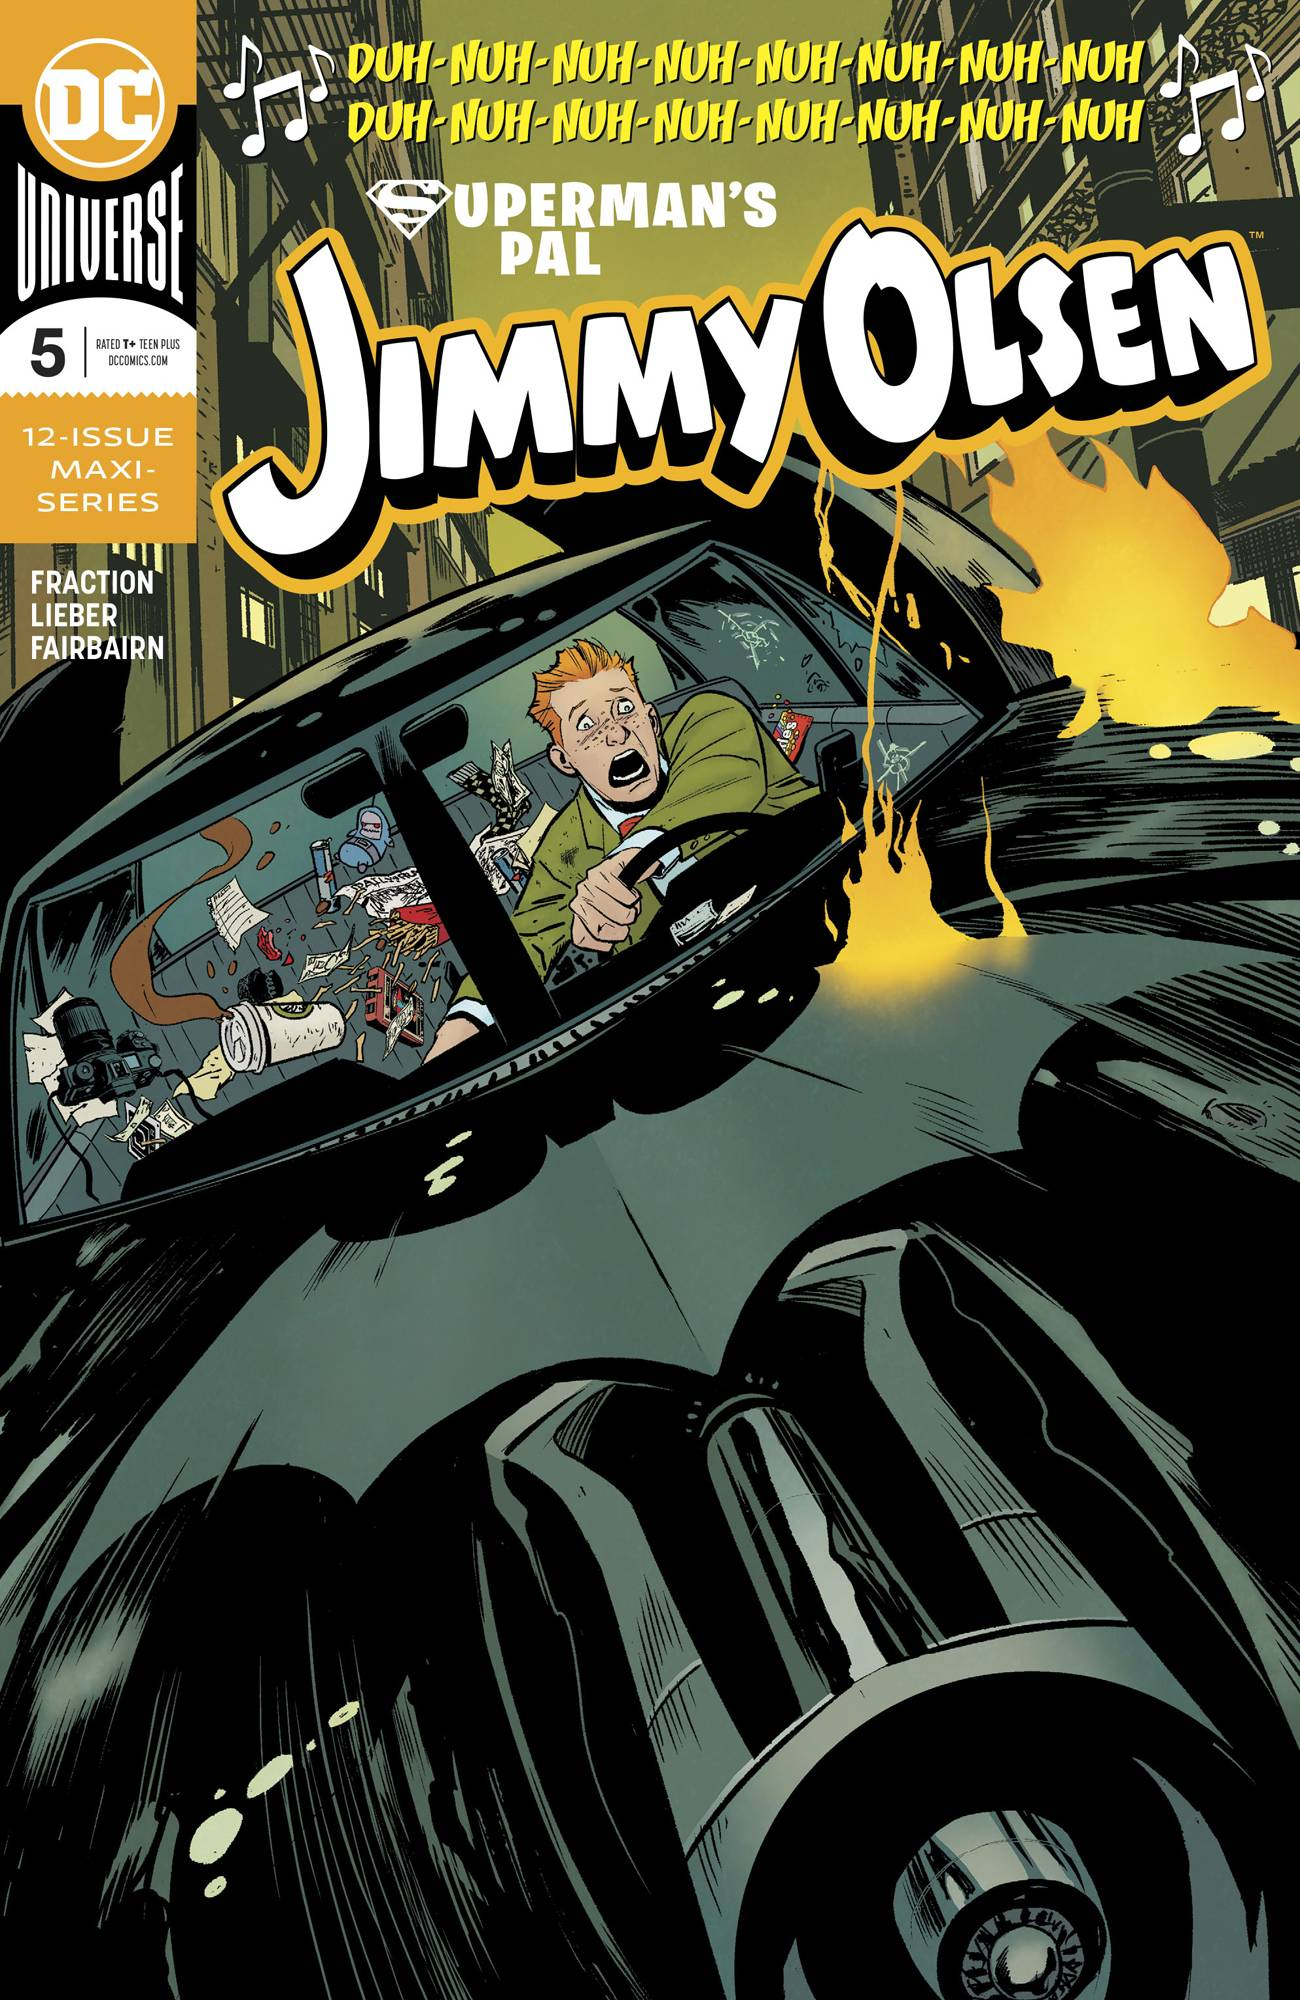 Superman's Pal, Jimmy Olsen #5 (2019)